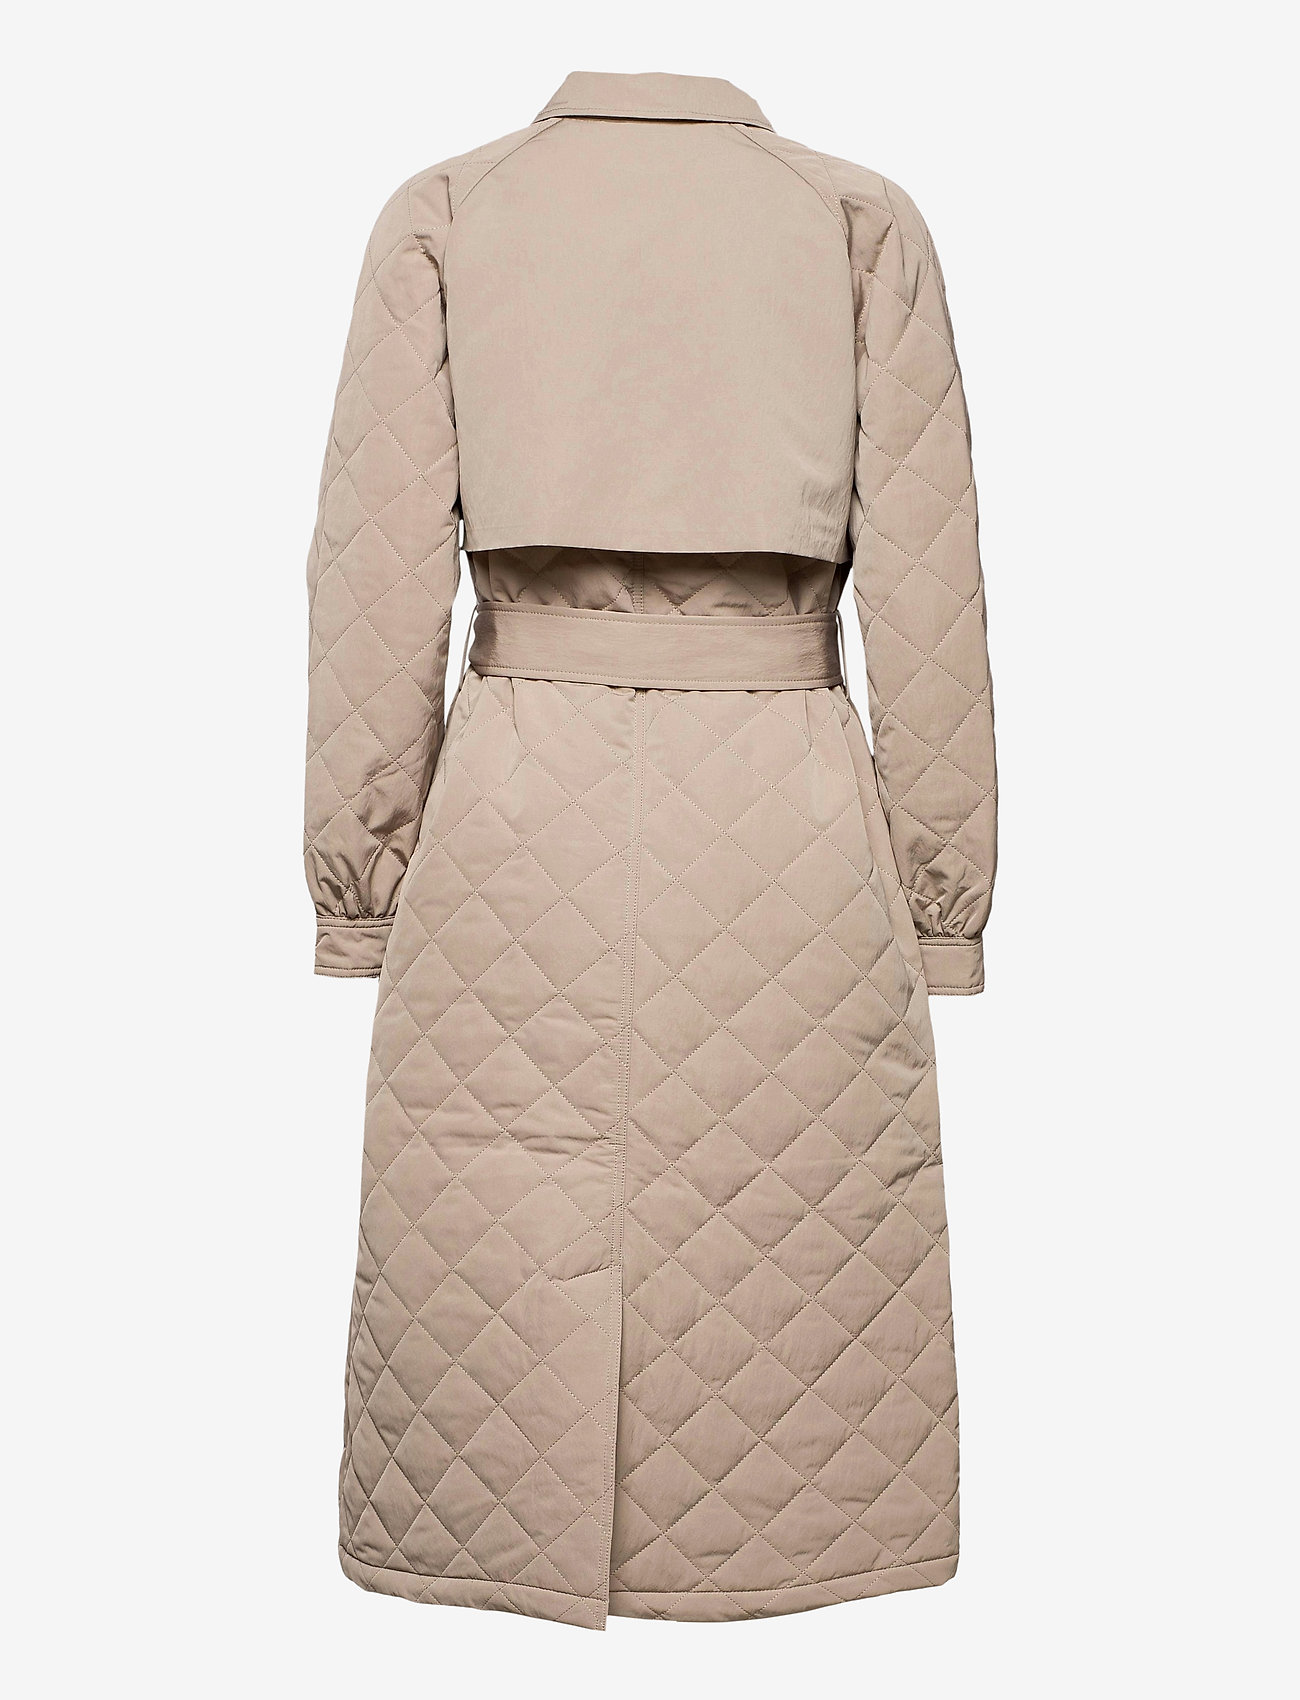 Selected Femme - SLFNINNA QUILTED TRENCHCOAT - trenchcoats - silver mink - 1